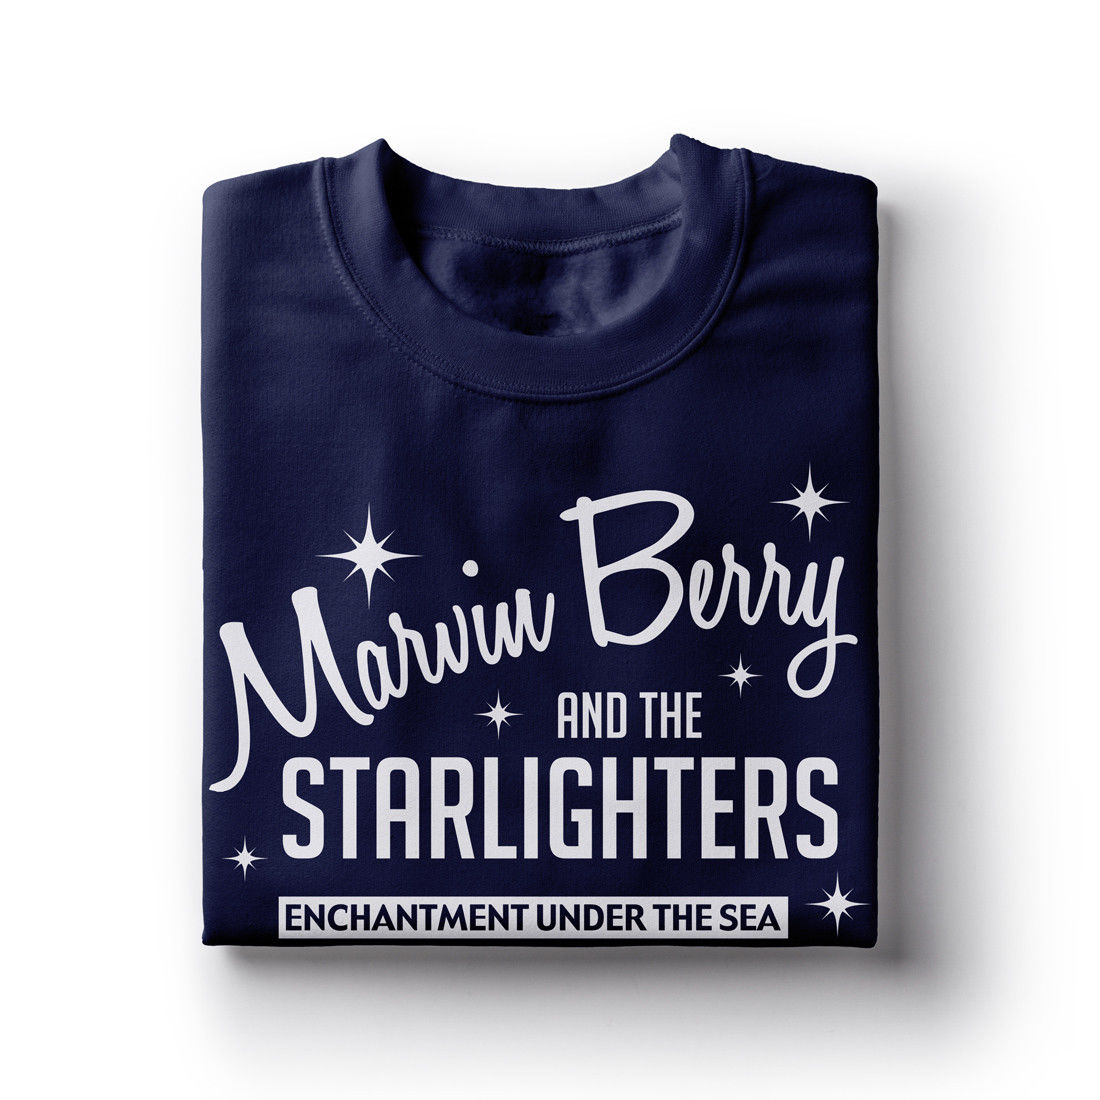 Marvin Berry And The Starlighters Inspired by Back To The Future T Shirt Top Tee 100 Cotton Humor Men Crewneck Tee Shirts in T Shirts from Men 39 s Clothing